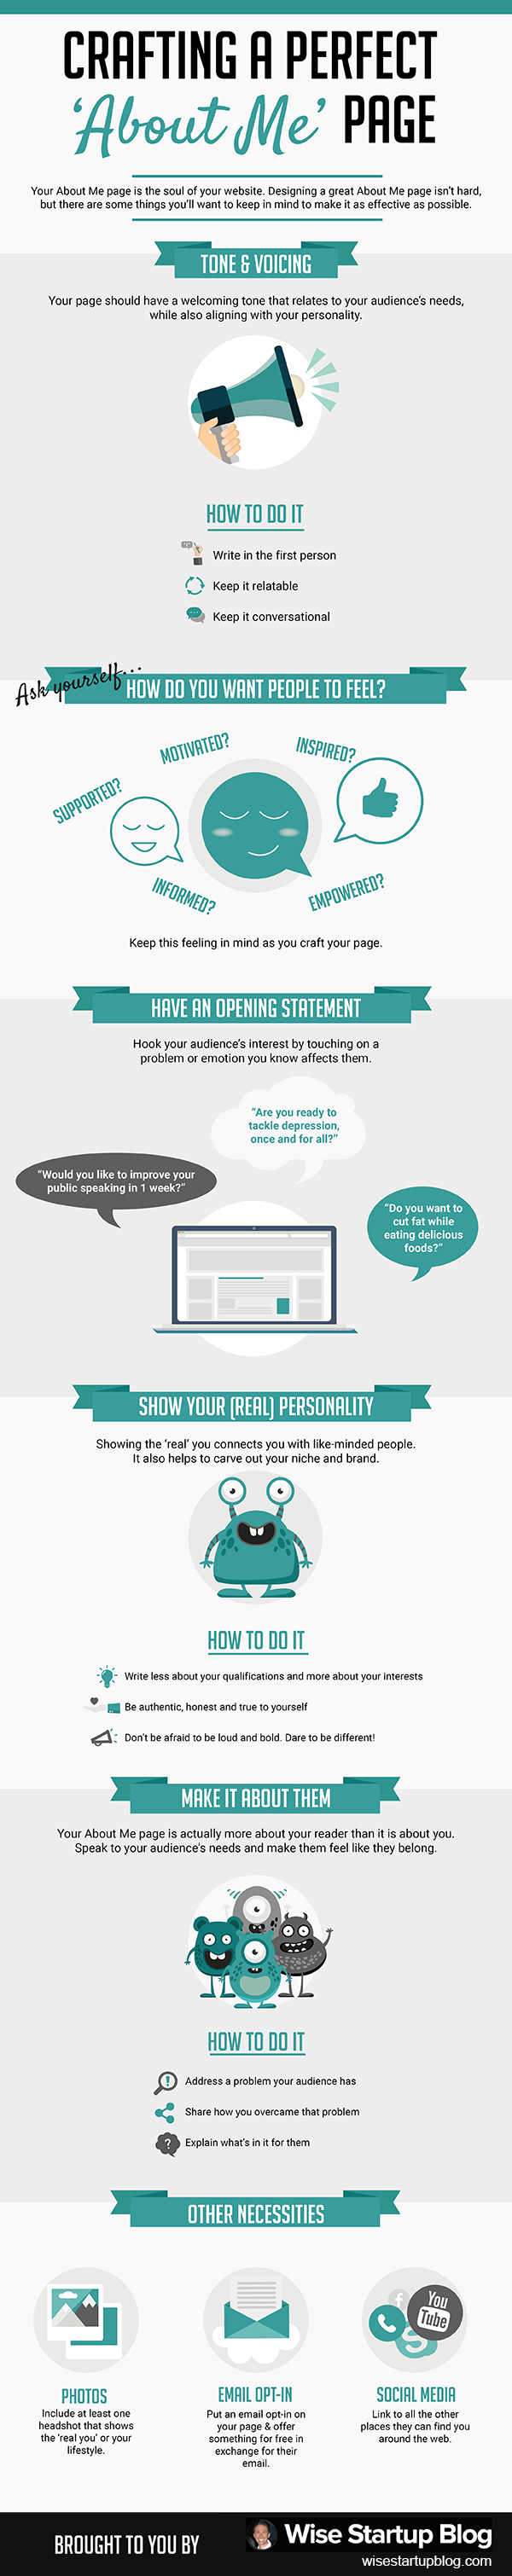 Are you ignoring one of the top 10 most popular pages on your site? If you haven't updated your about me page in the past year, then the answer is yes. With this in mind, checkout the About Me Page: The Ultimate How to Guide and the accompanying infographic.   Blogging Tips